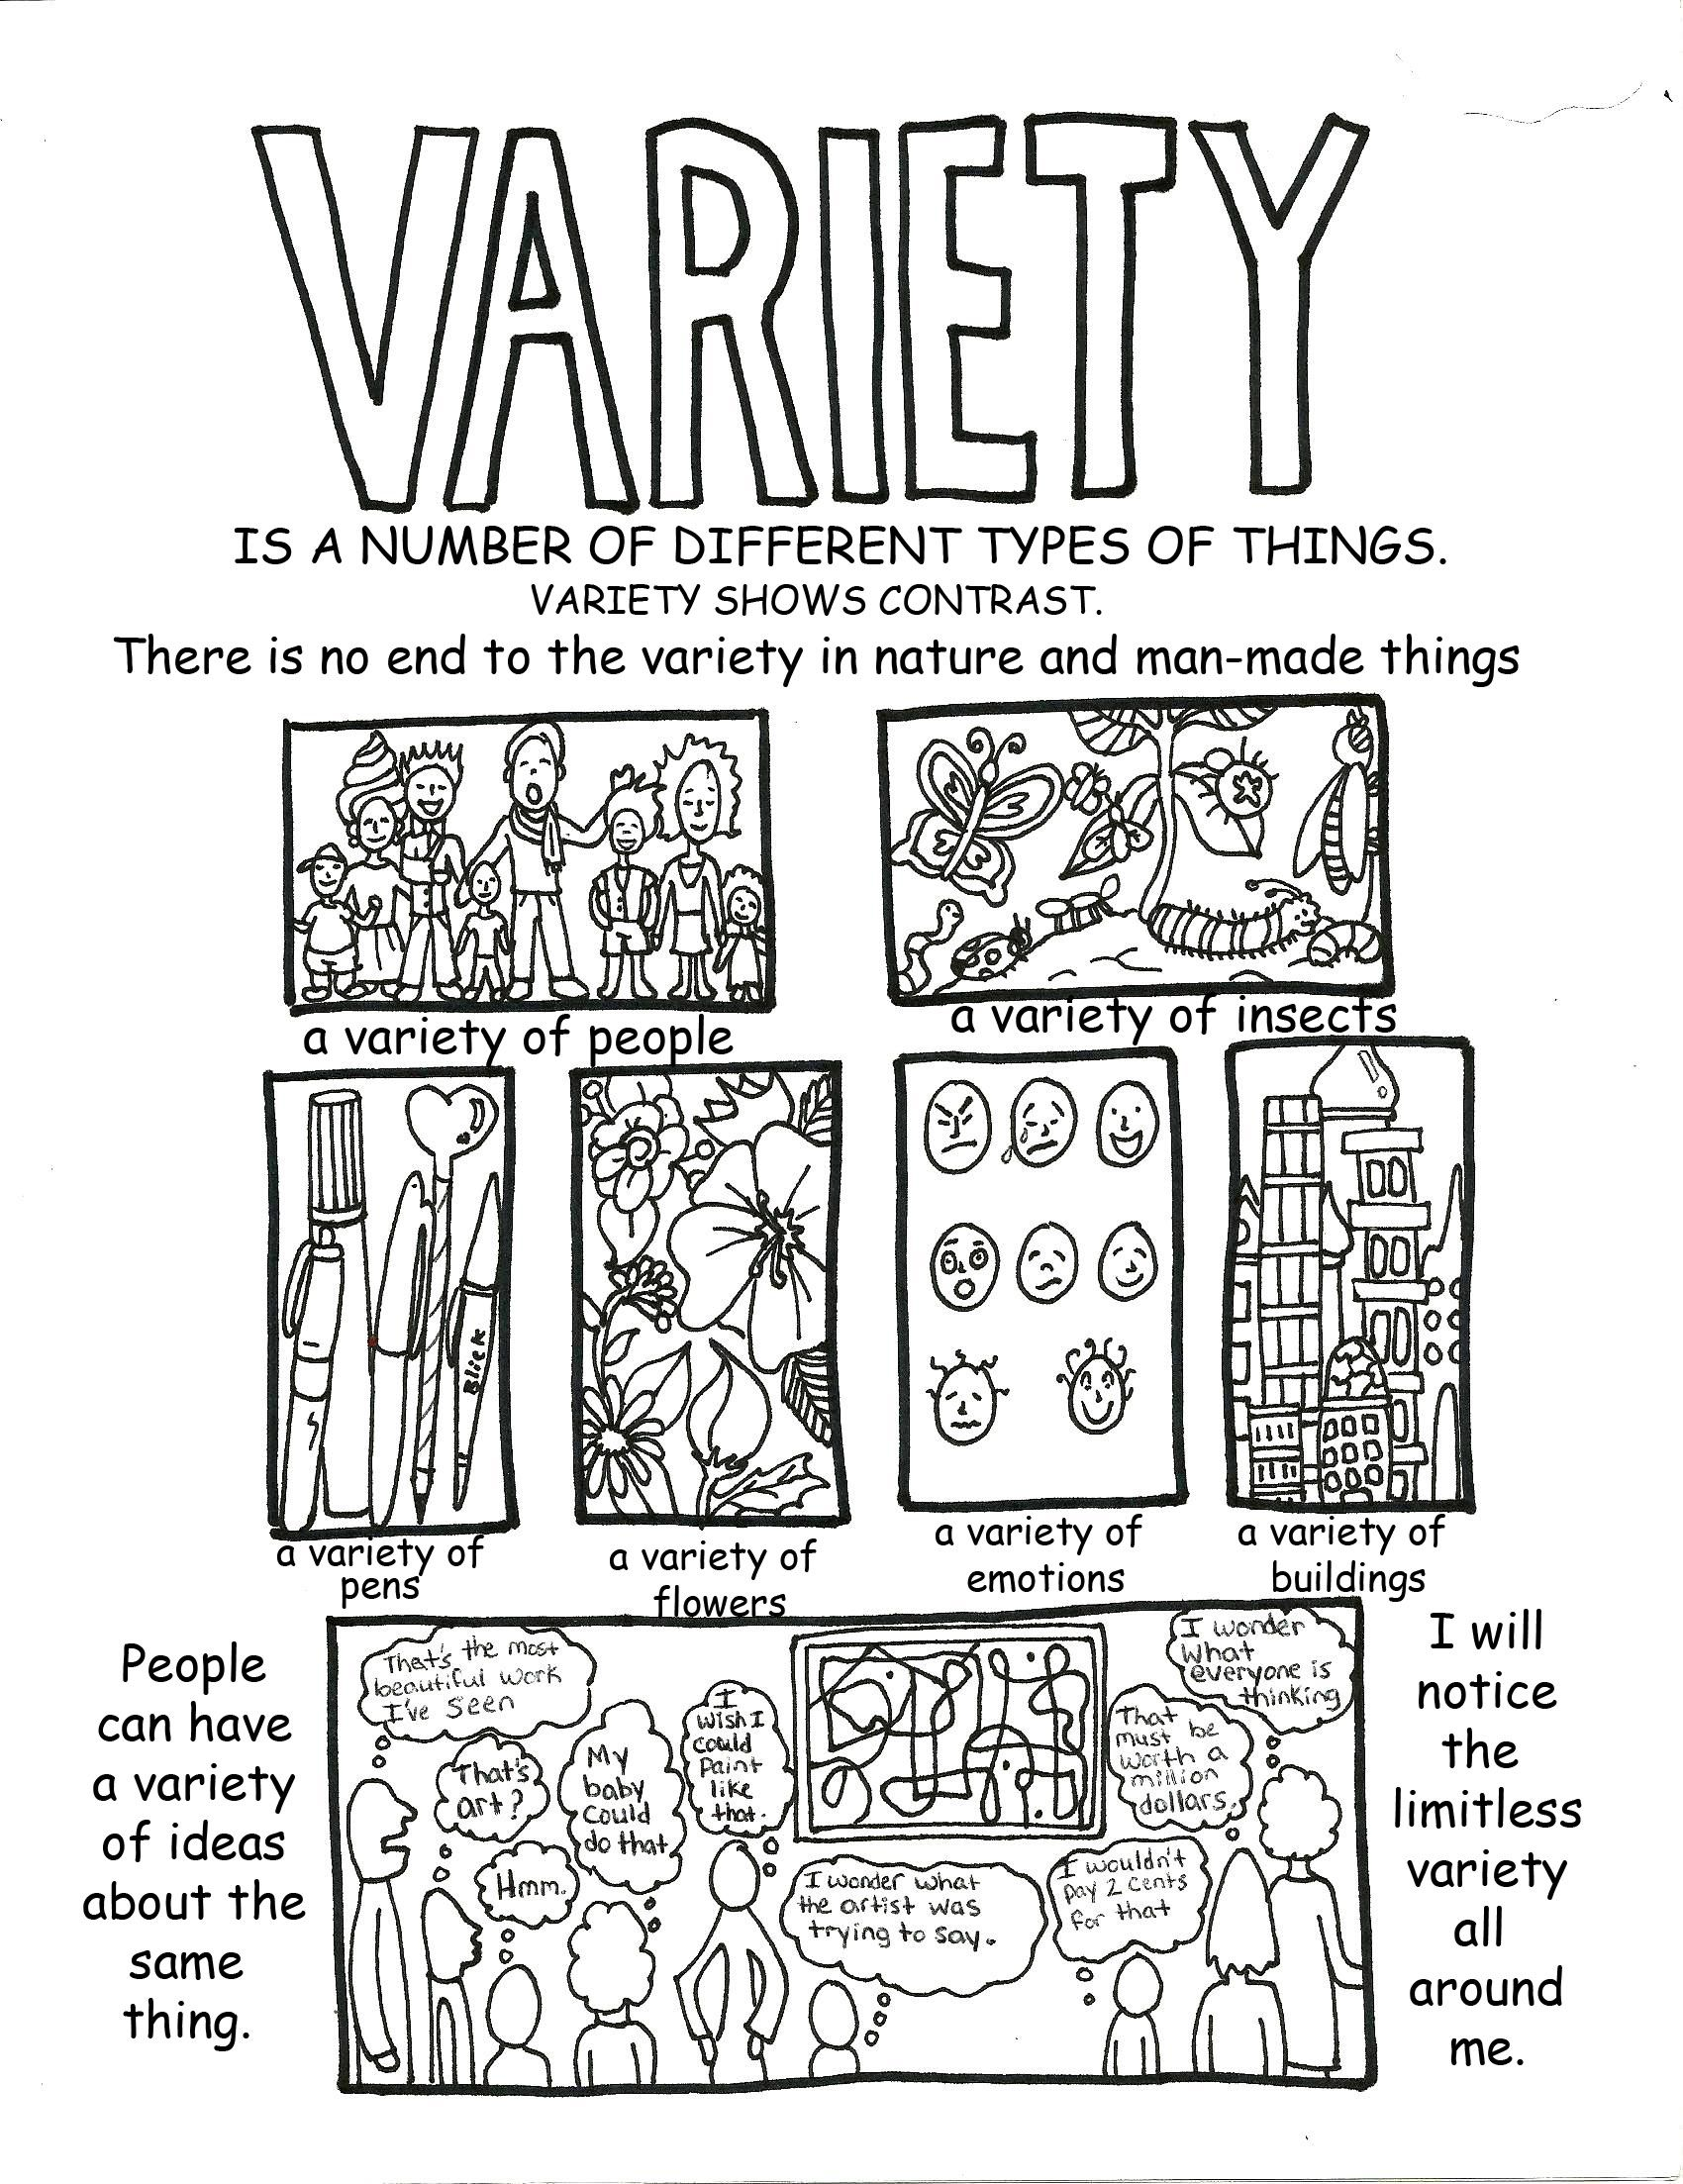 Variety Handout Poster With Images